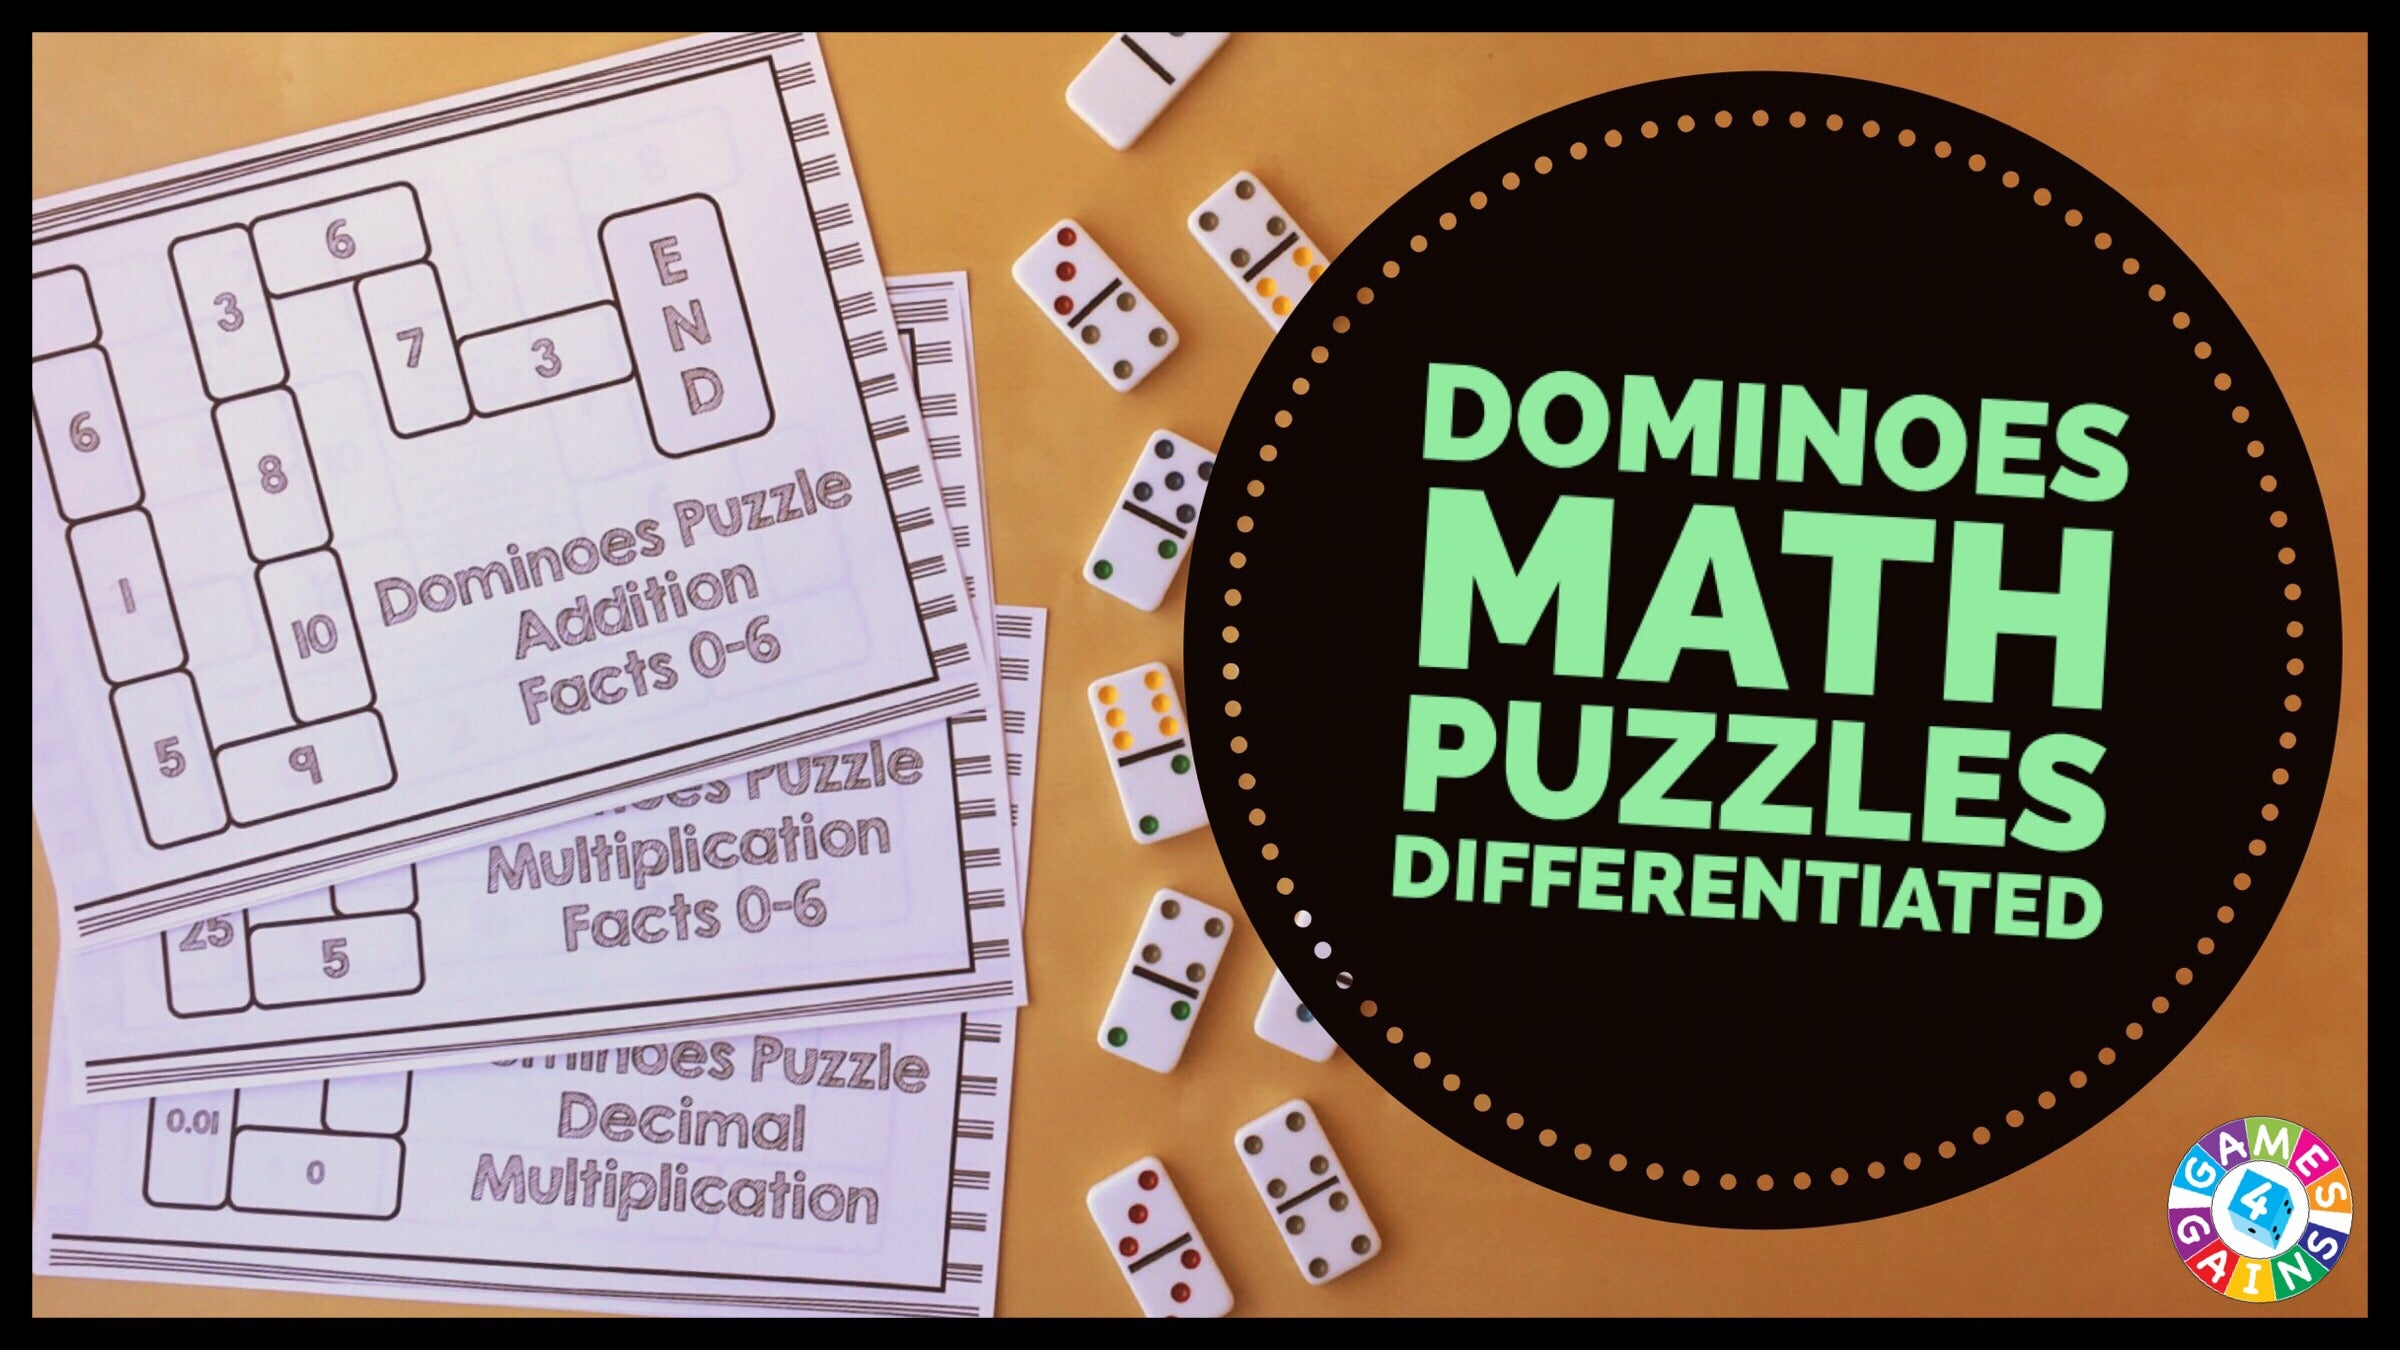 Use Basic Facts to Solve These Dominoes Math Puzzles